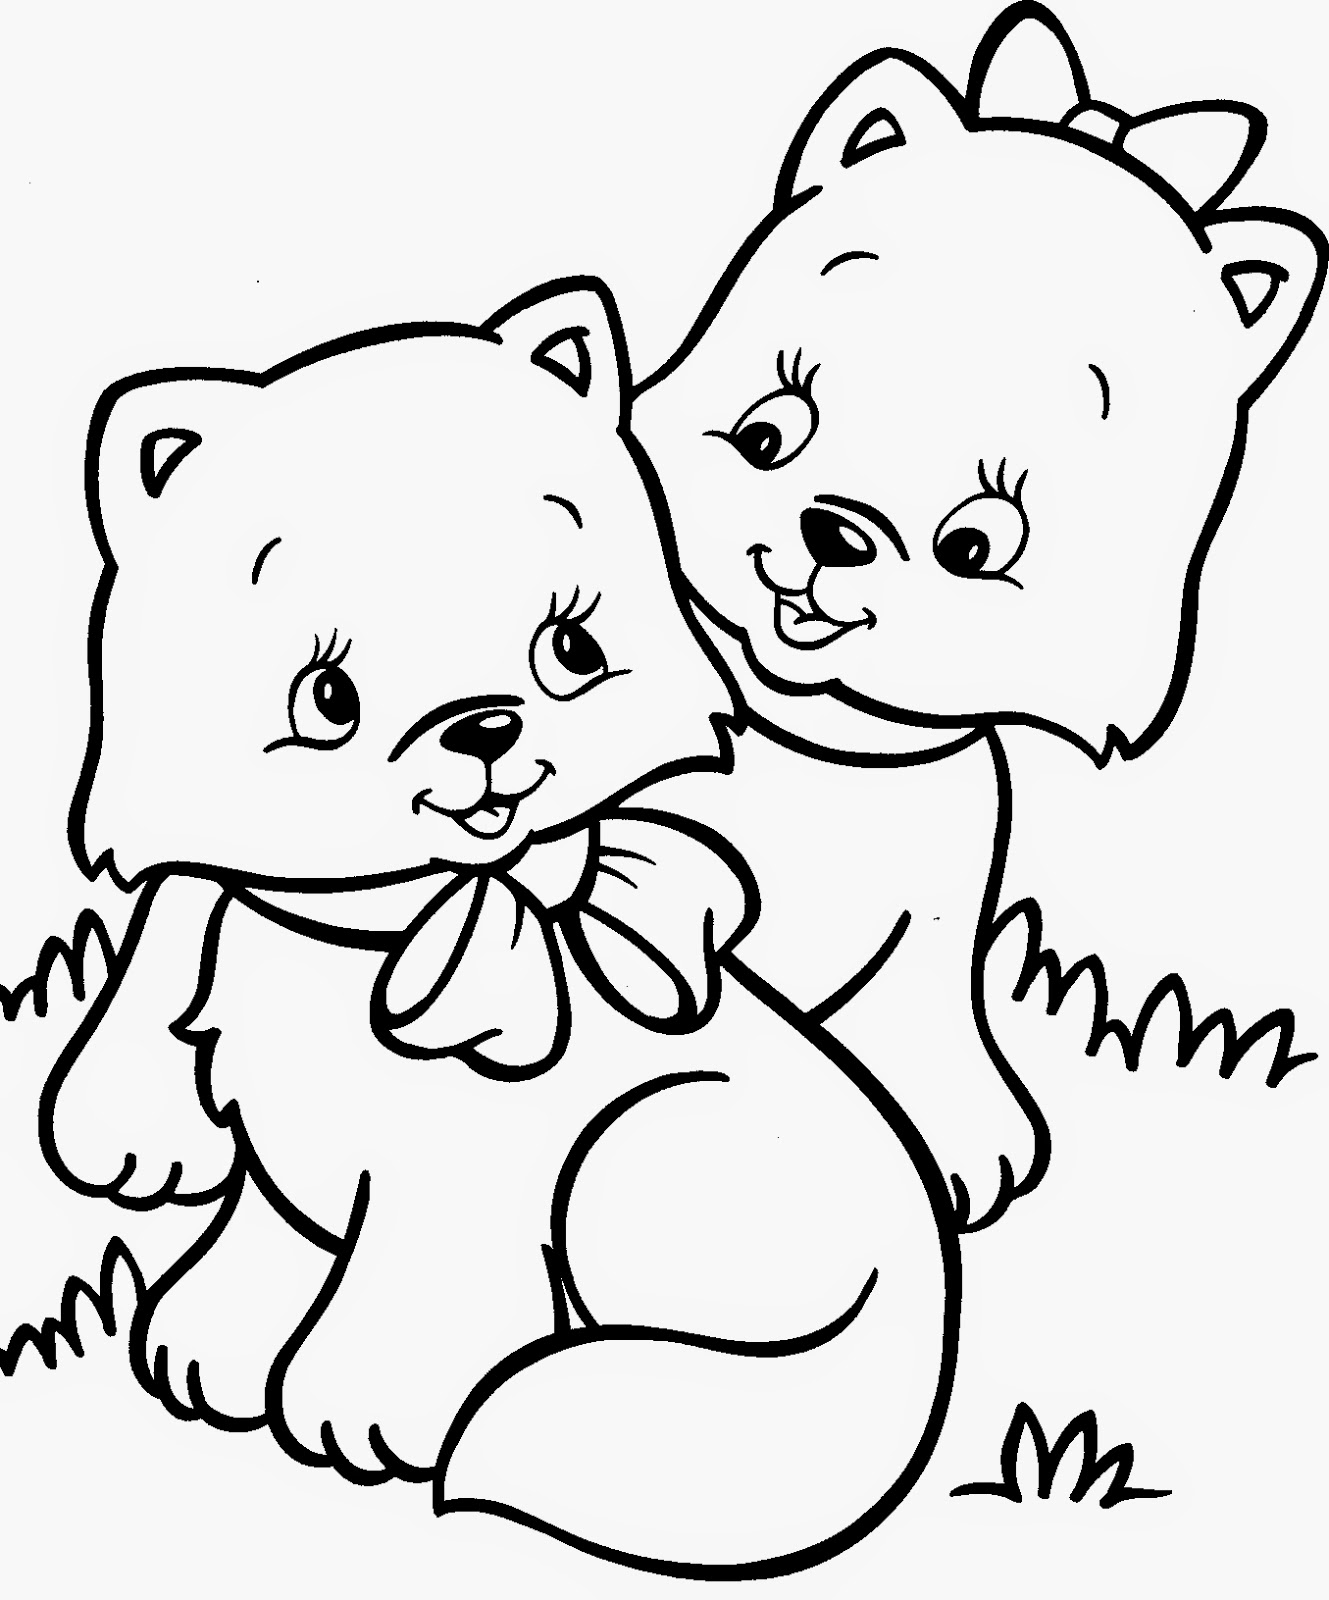 kitten color page kitten coloring pages best coloring pages for kids page color kitten